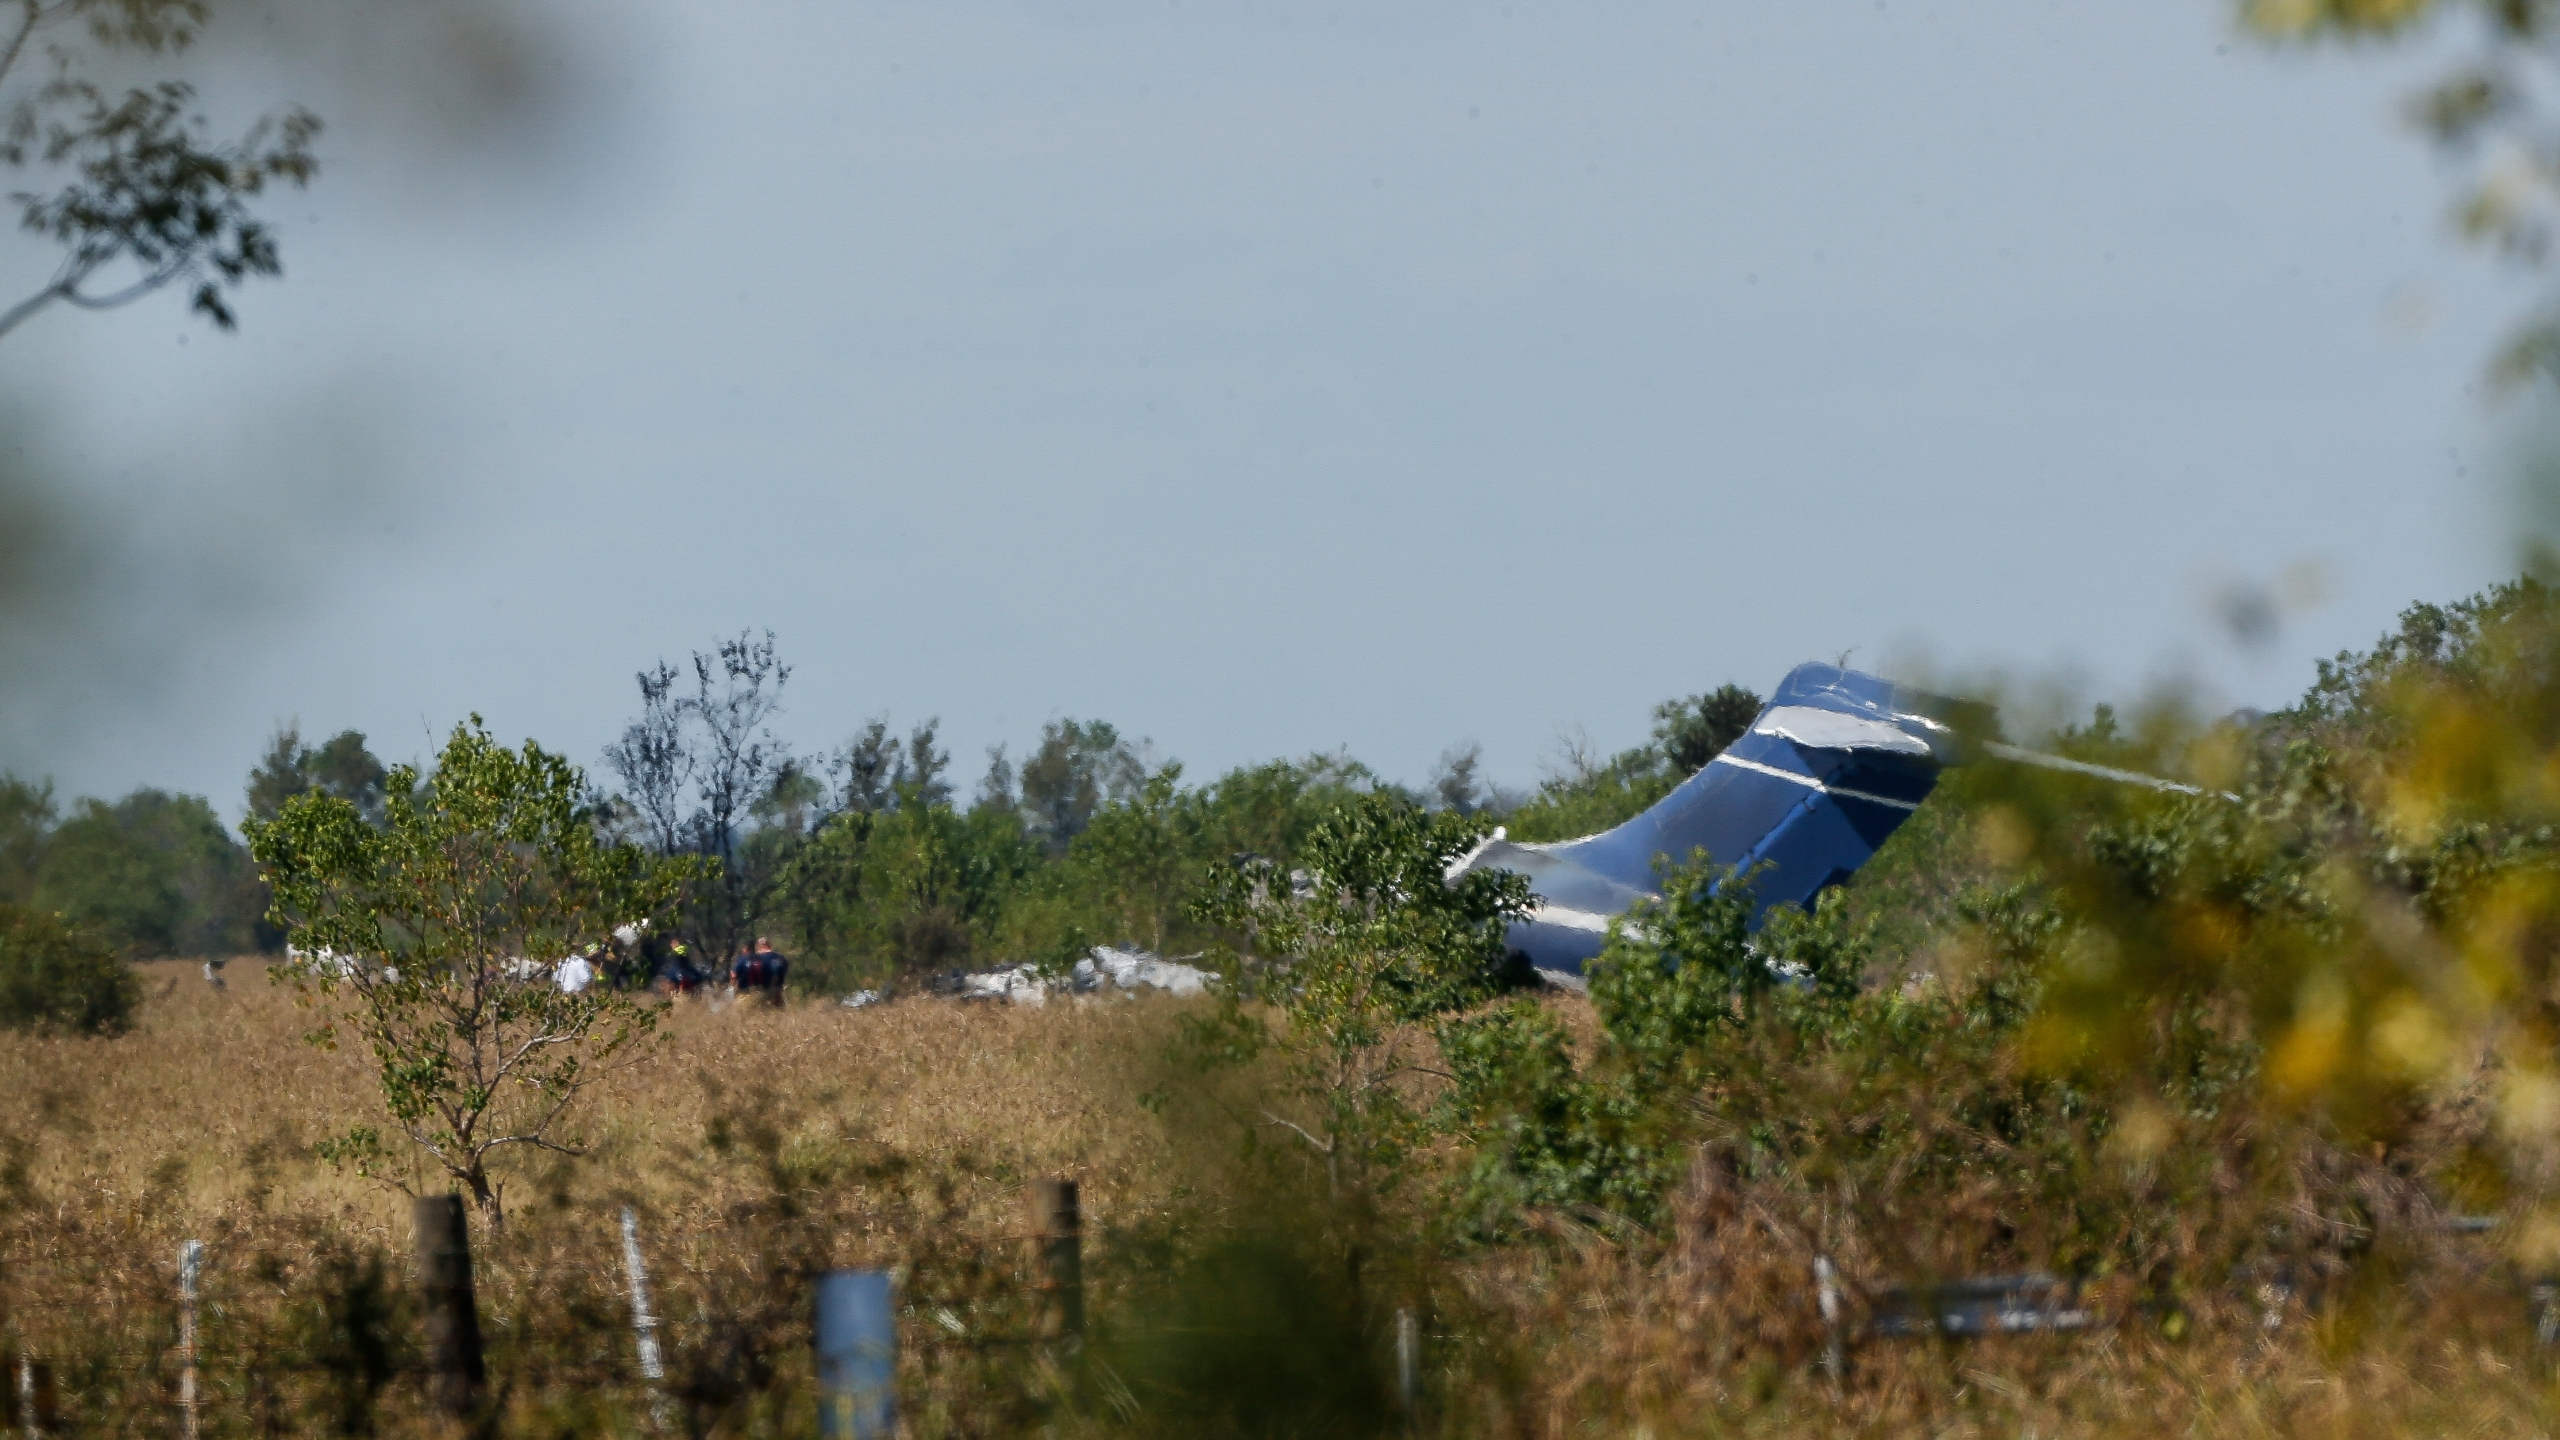 Remnants of an aircraft can be seen at the site of airplane crash near the intersection of Morton Road and FM 2855, on Tuesday, Oct. 19, 2021, in Brookshire, Texas. No one was seriously hurt when the airplane bound for Boston ran off a runway and burned Tuesday morning near Houston, authorities said. ( odofredo A. Vásquez/Houston Chronicle via AP)